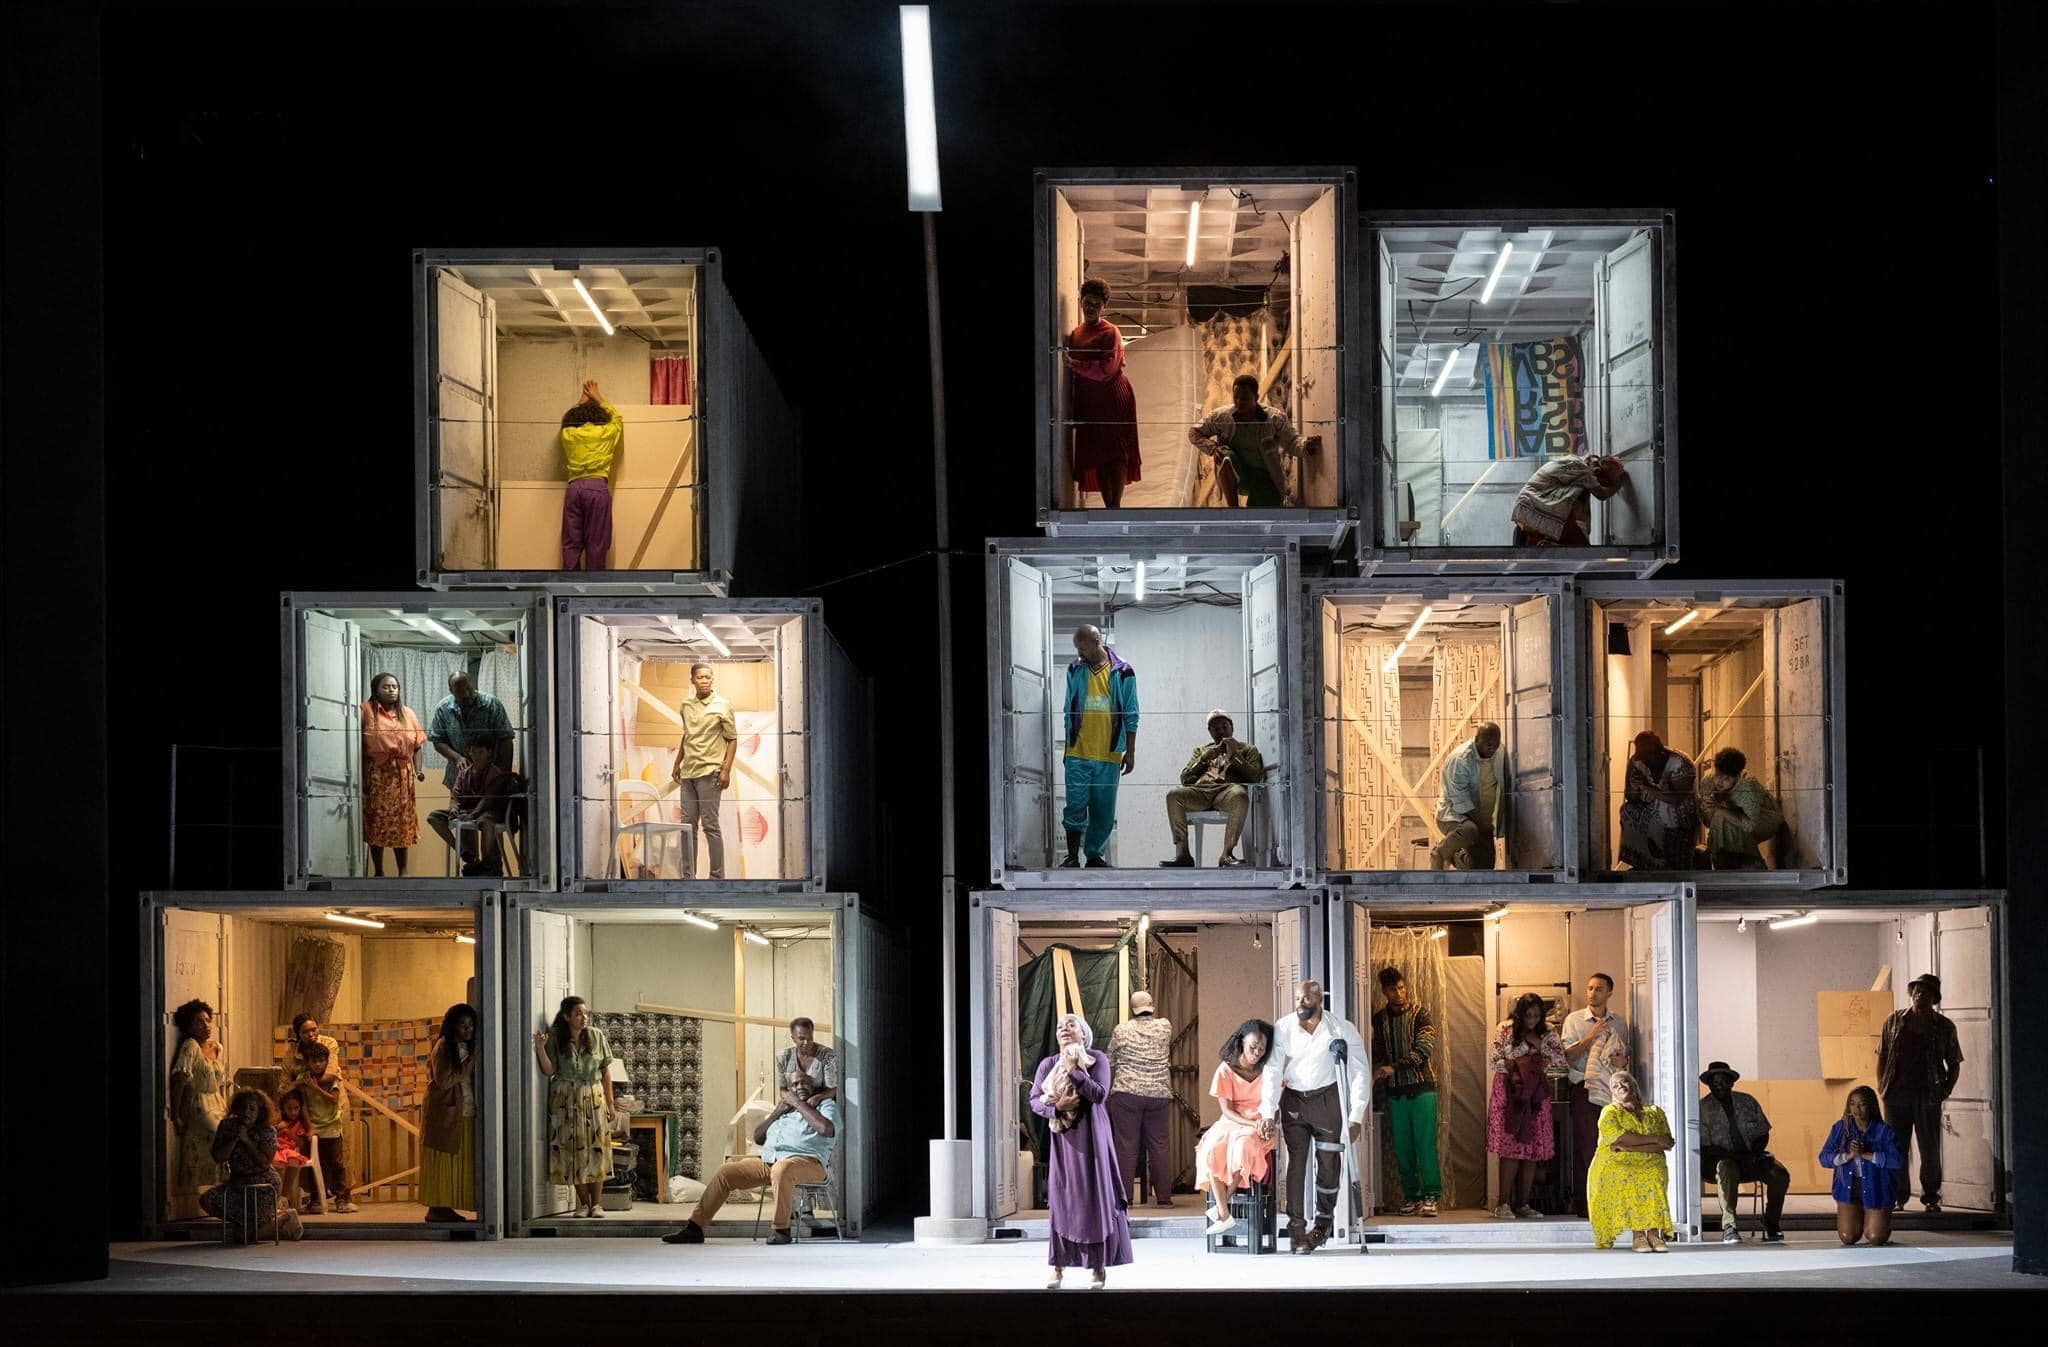 Here's how Porgy looks in Vienna's Covid staging